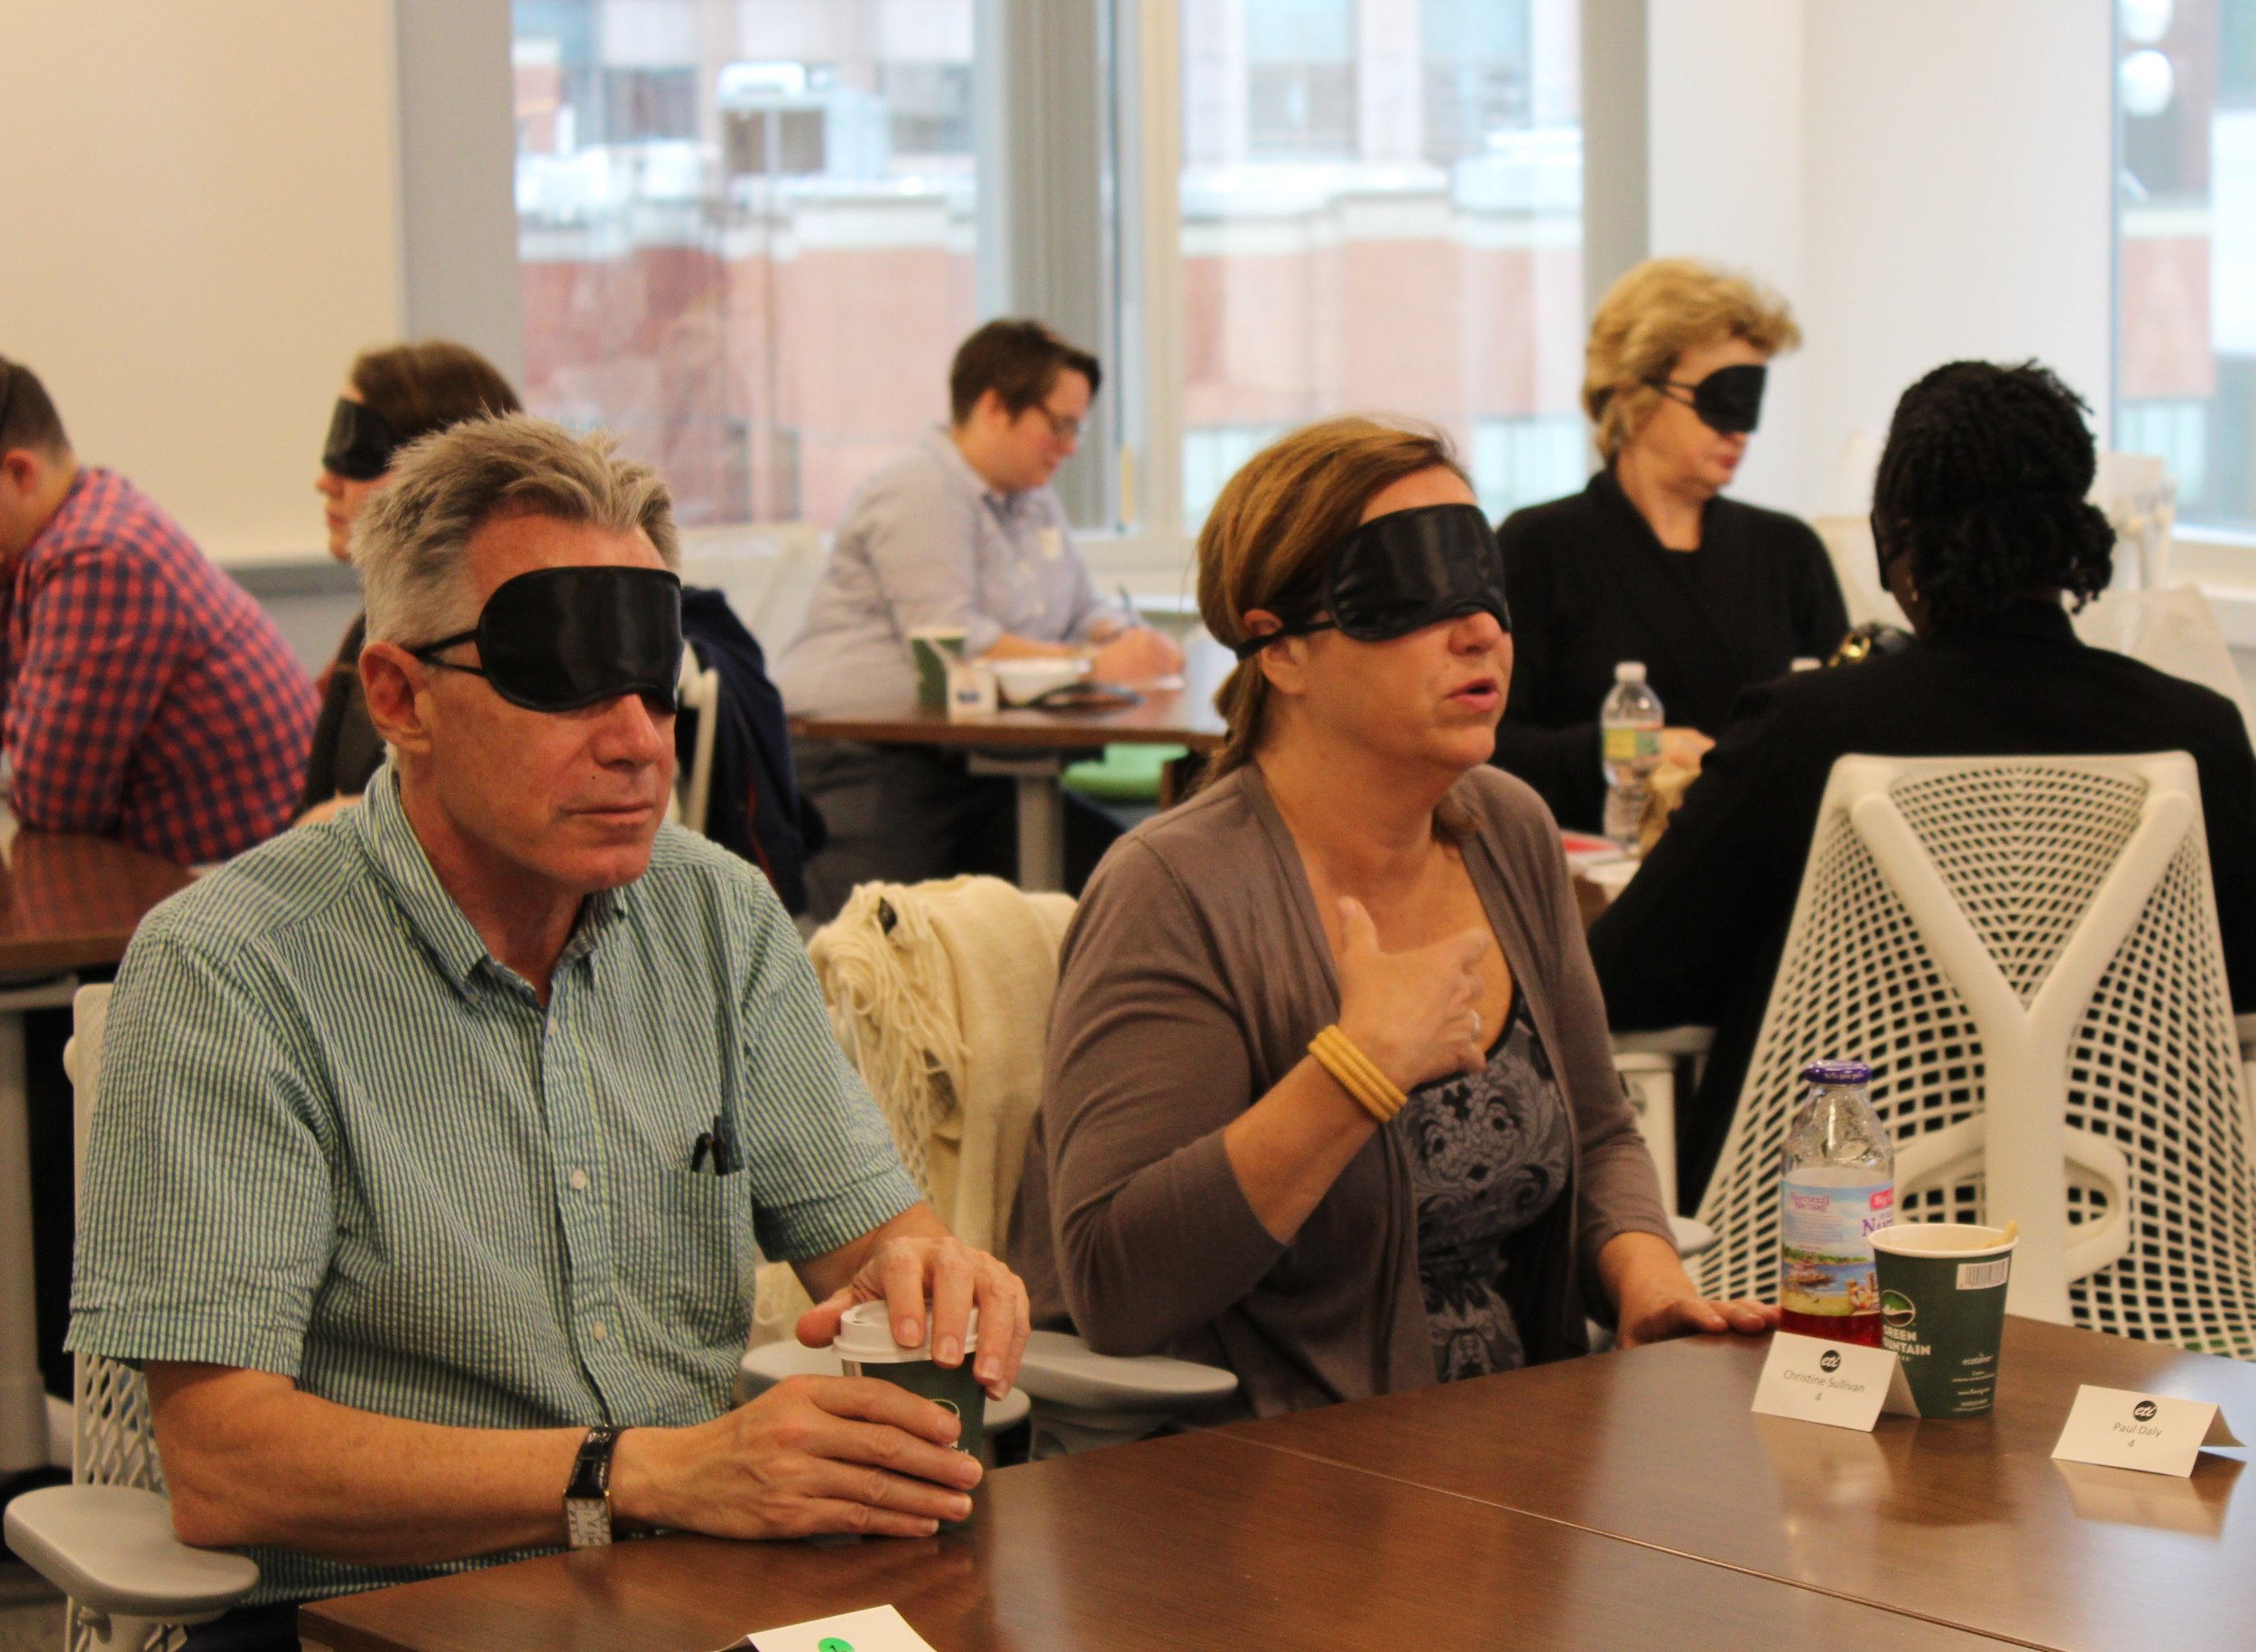 A blindfolded participant shares with her table. Another participants sitting to her right listens intently.